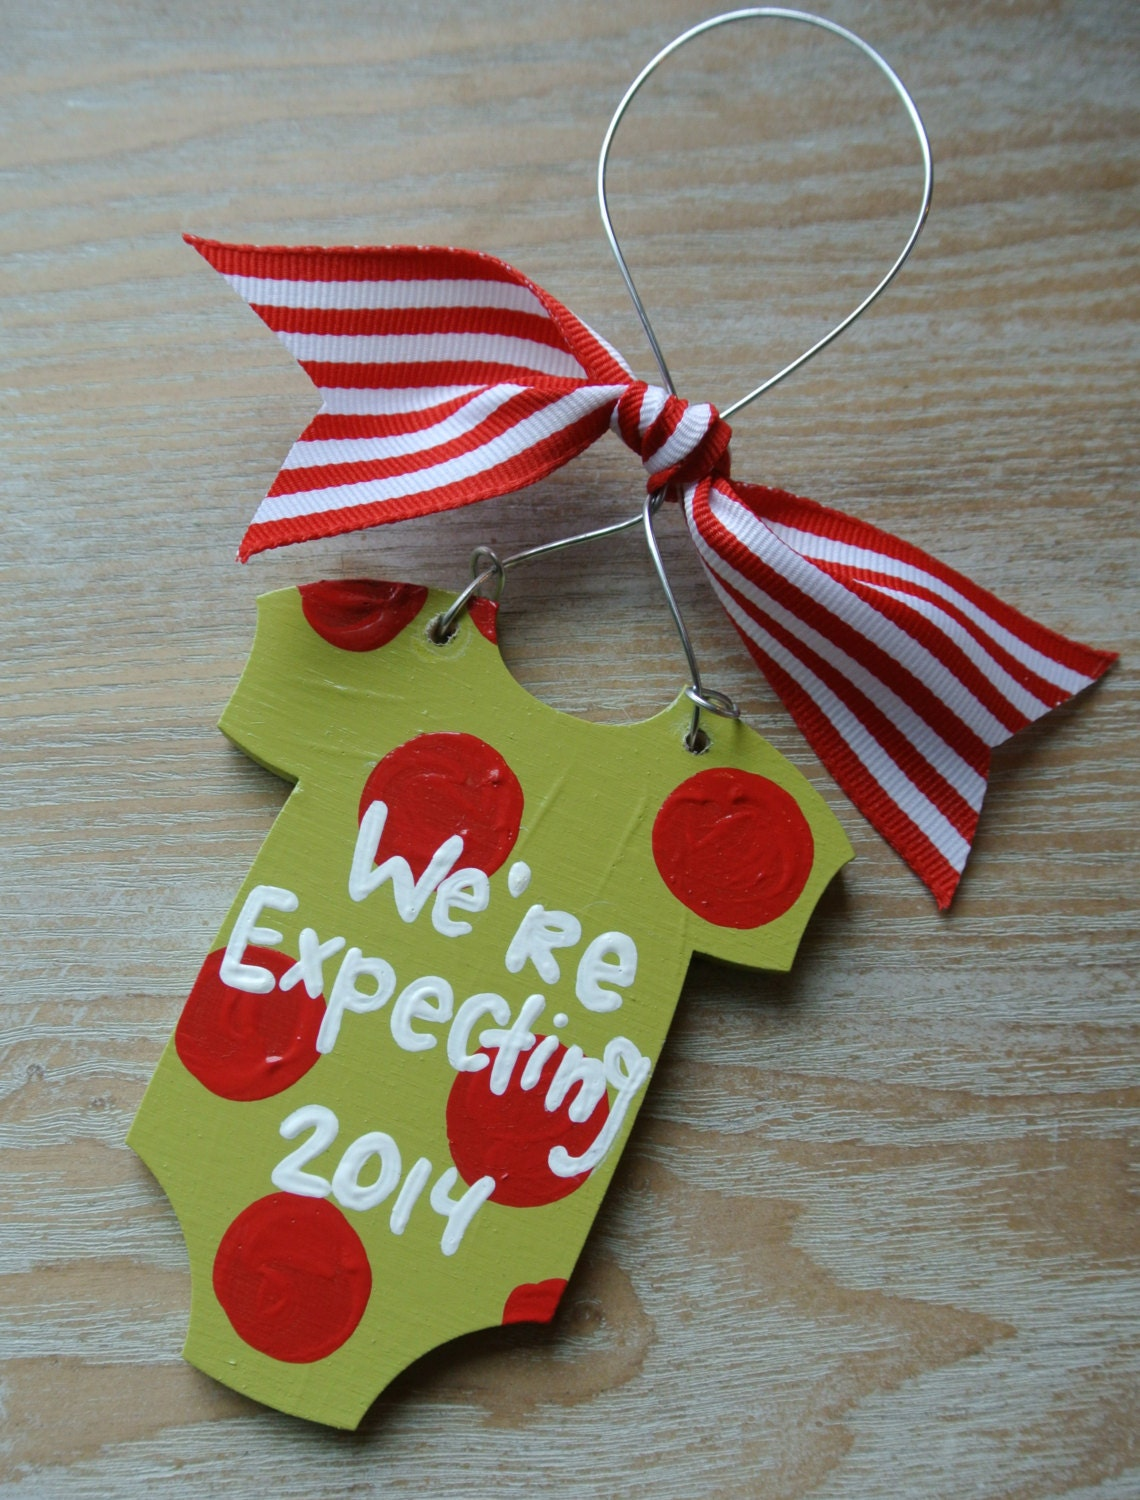 We're Expecting Baby Christmas Ornament We're